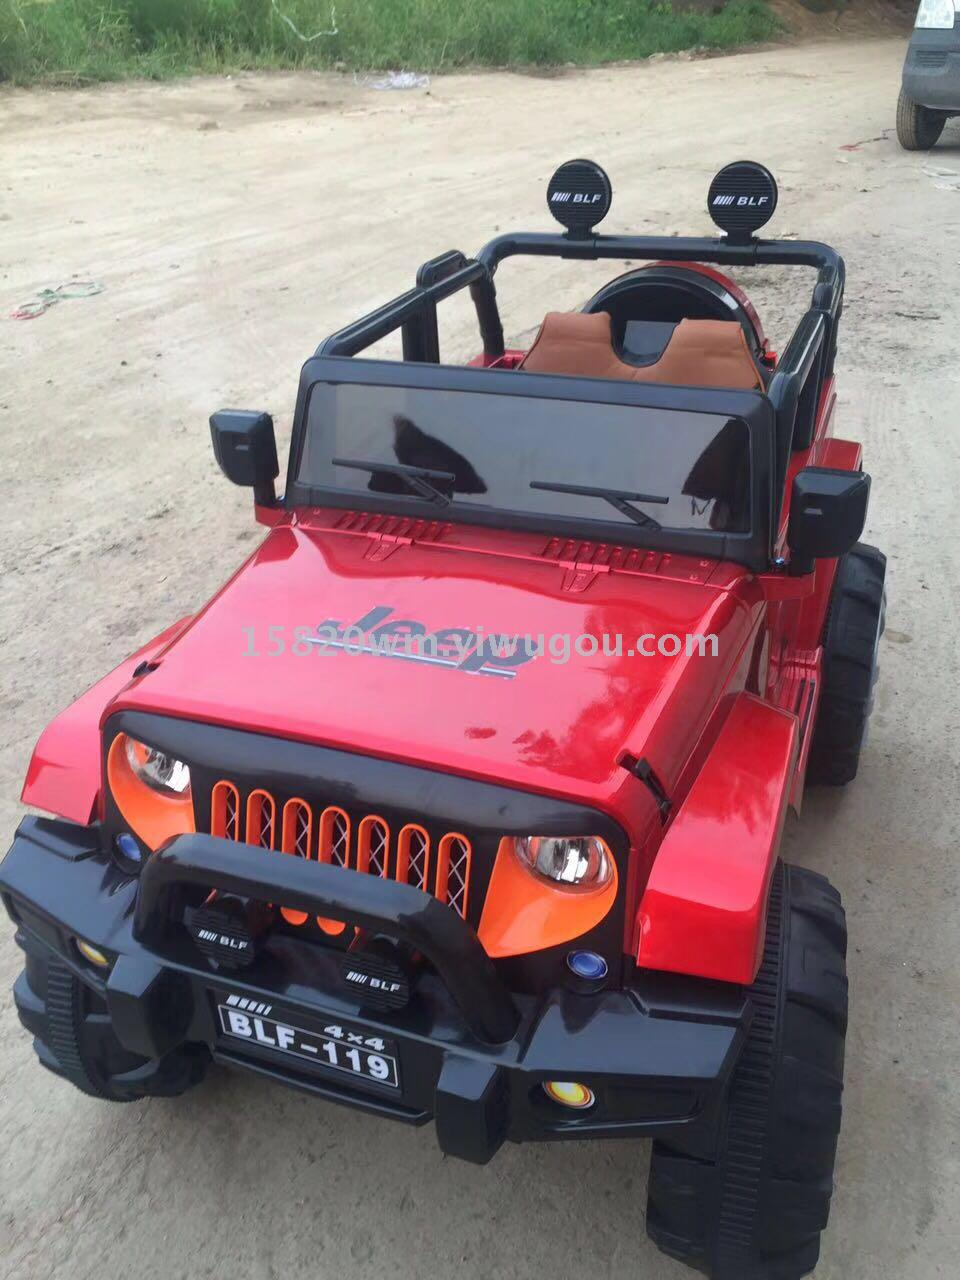 Supply Children S Electric Car Four Cycle Toy Car Off Road Vehicle